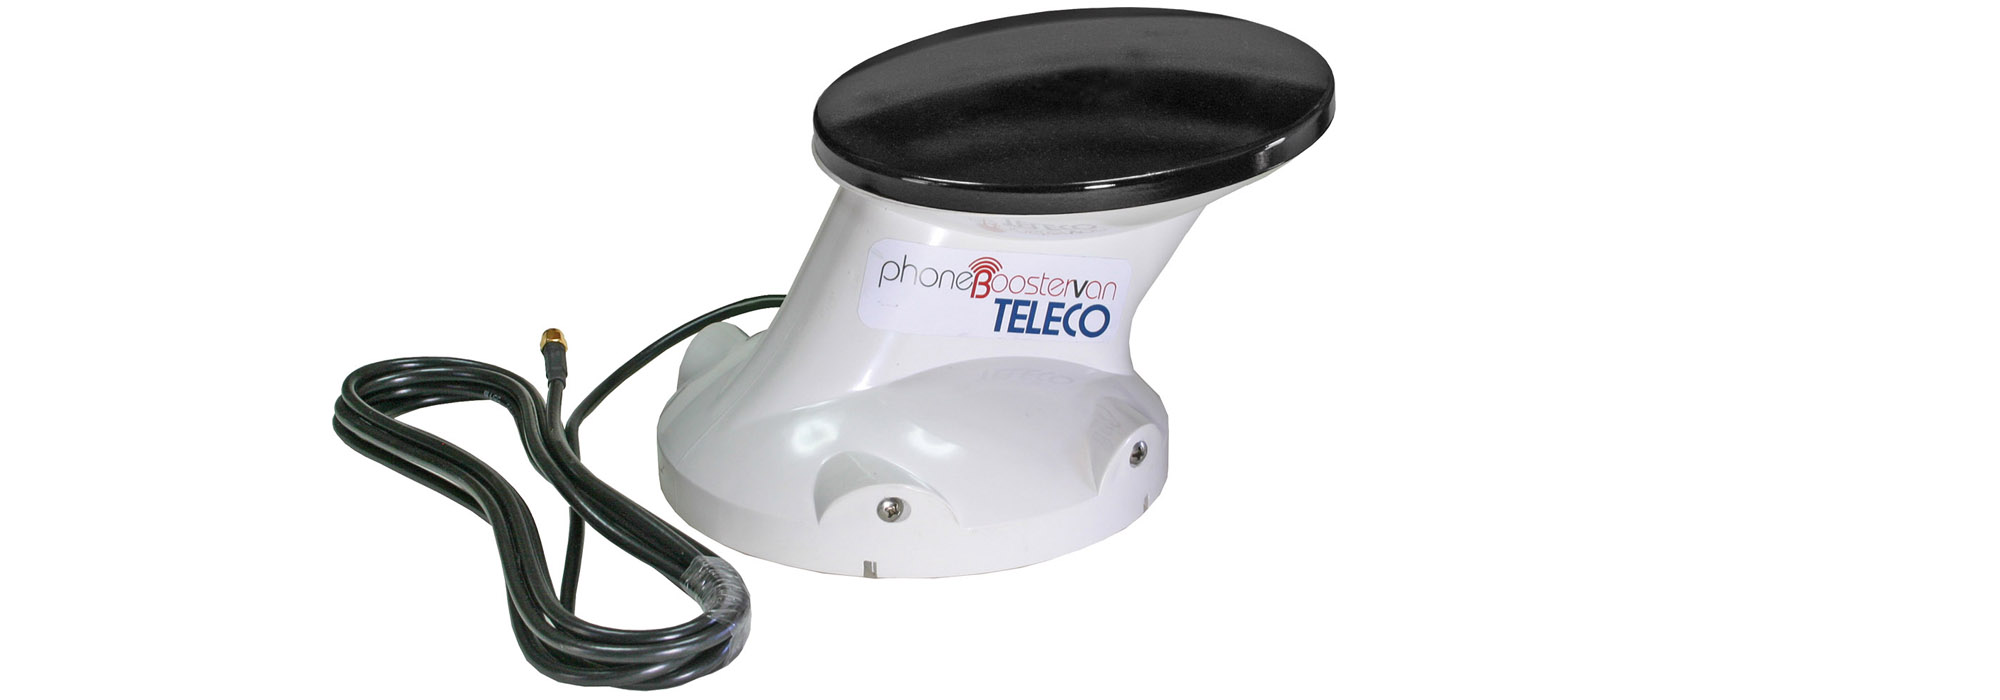 TELECO PhoneBoosterVan 2.0: greater performance with the new antenna